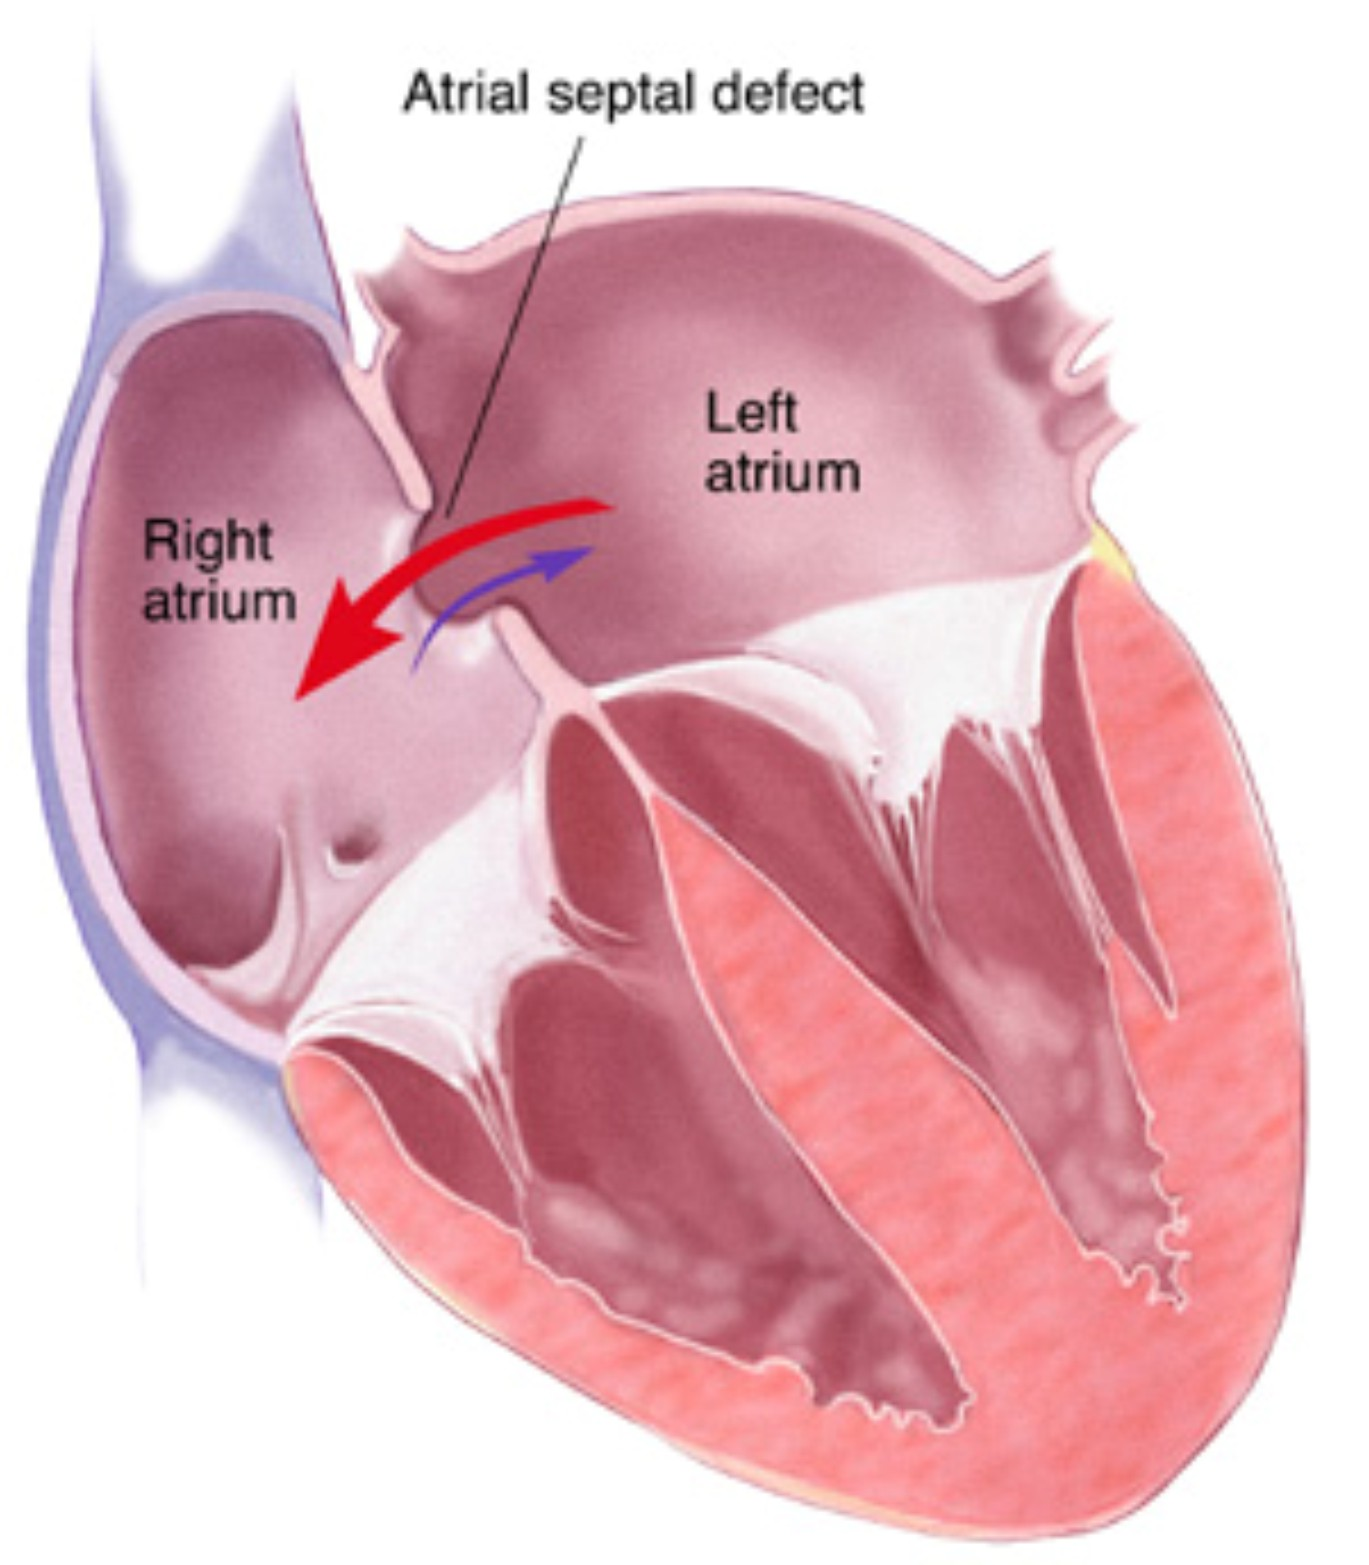 living in well being image Atrial Septal Defect